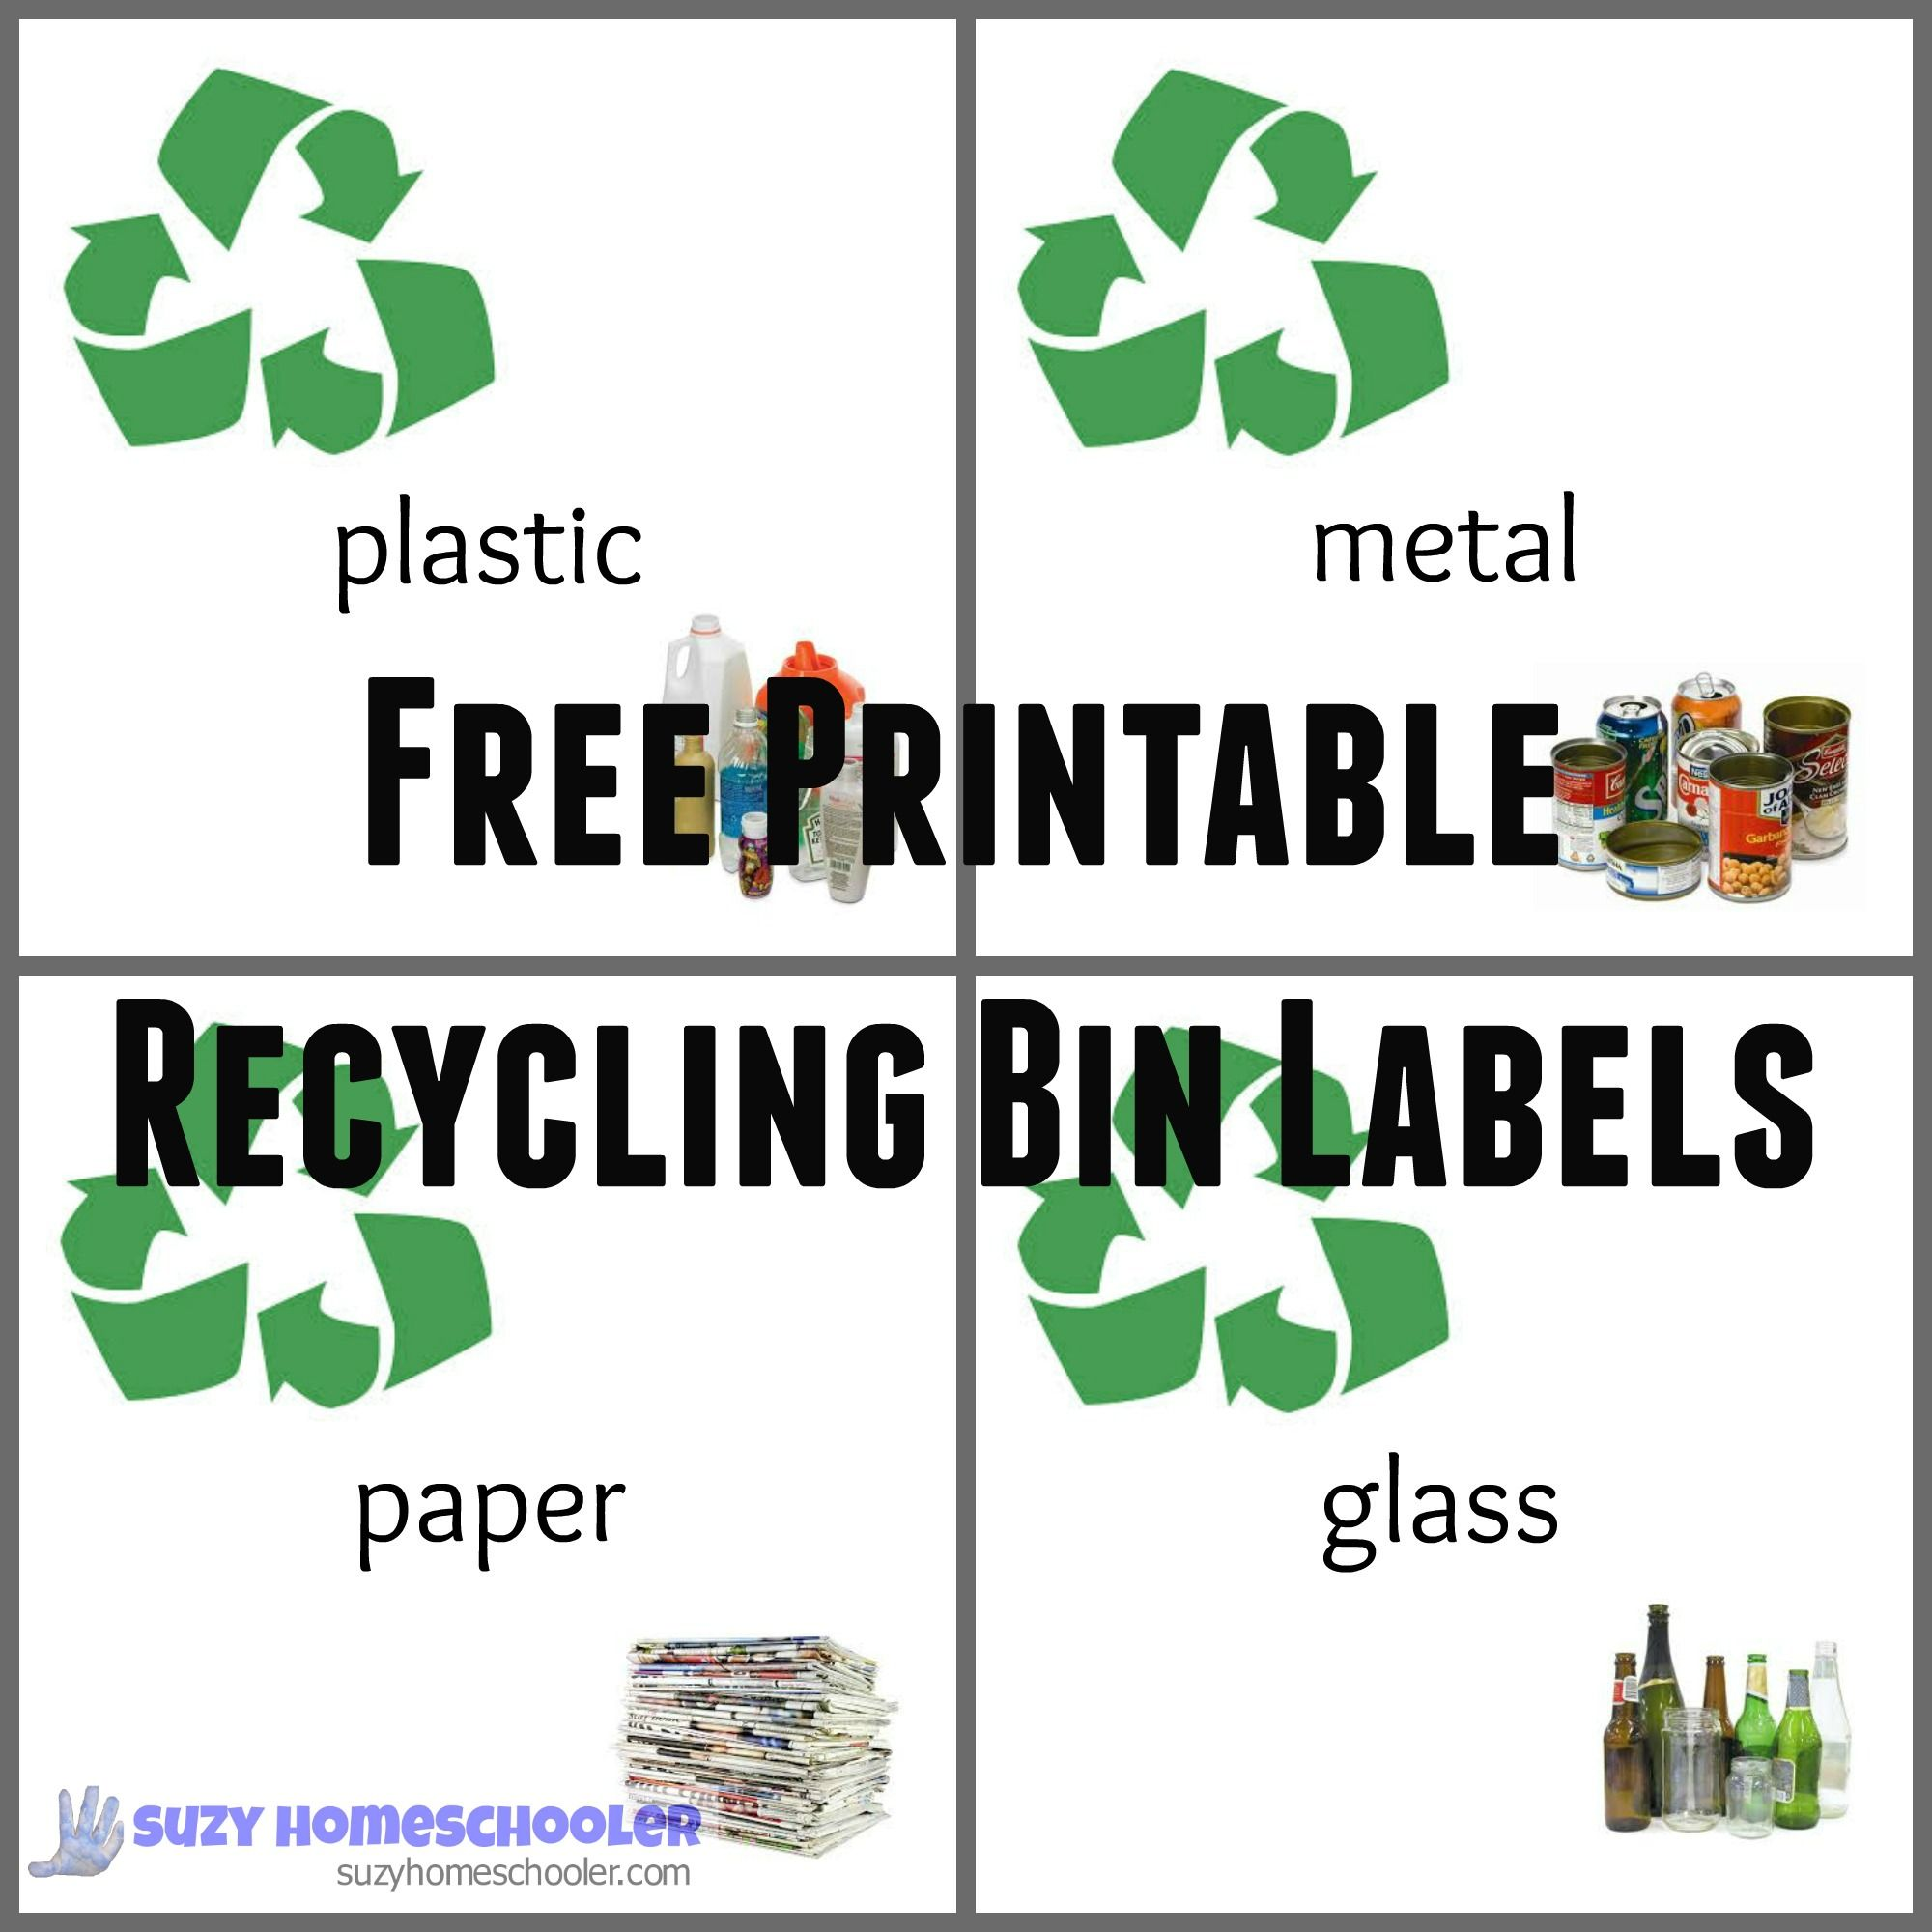 recycle bin labels paper cans plastic glass Yahoo